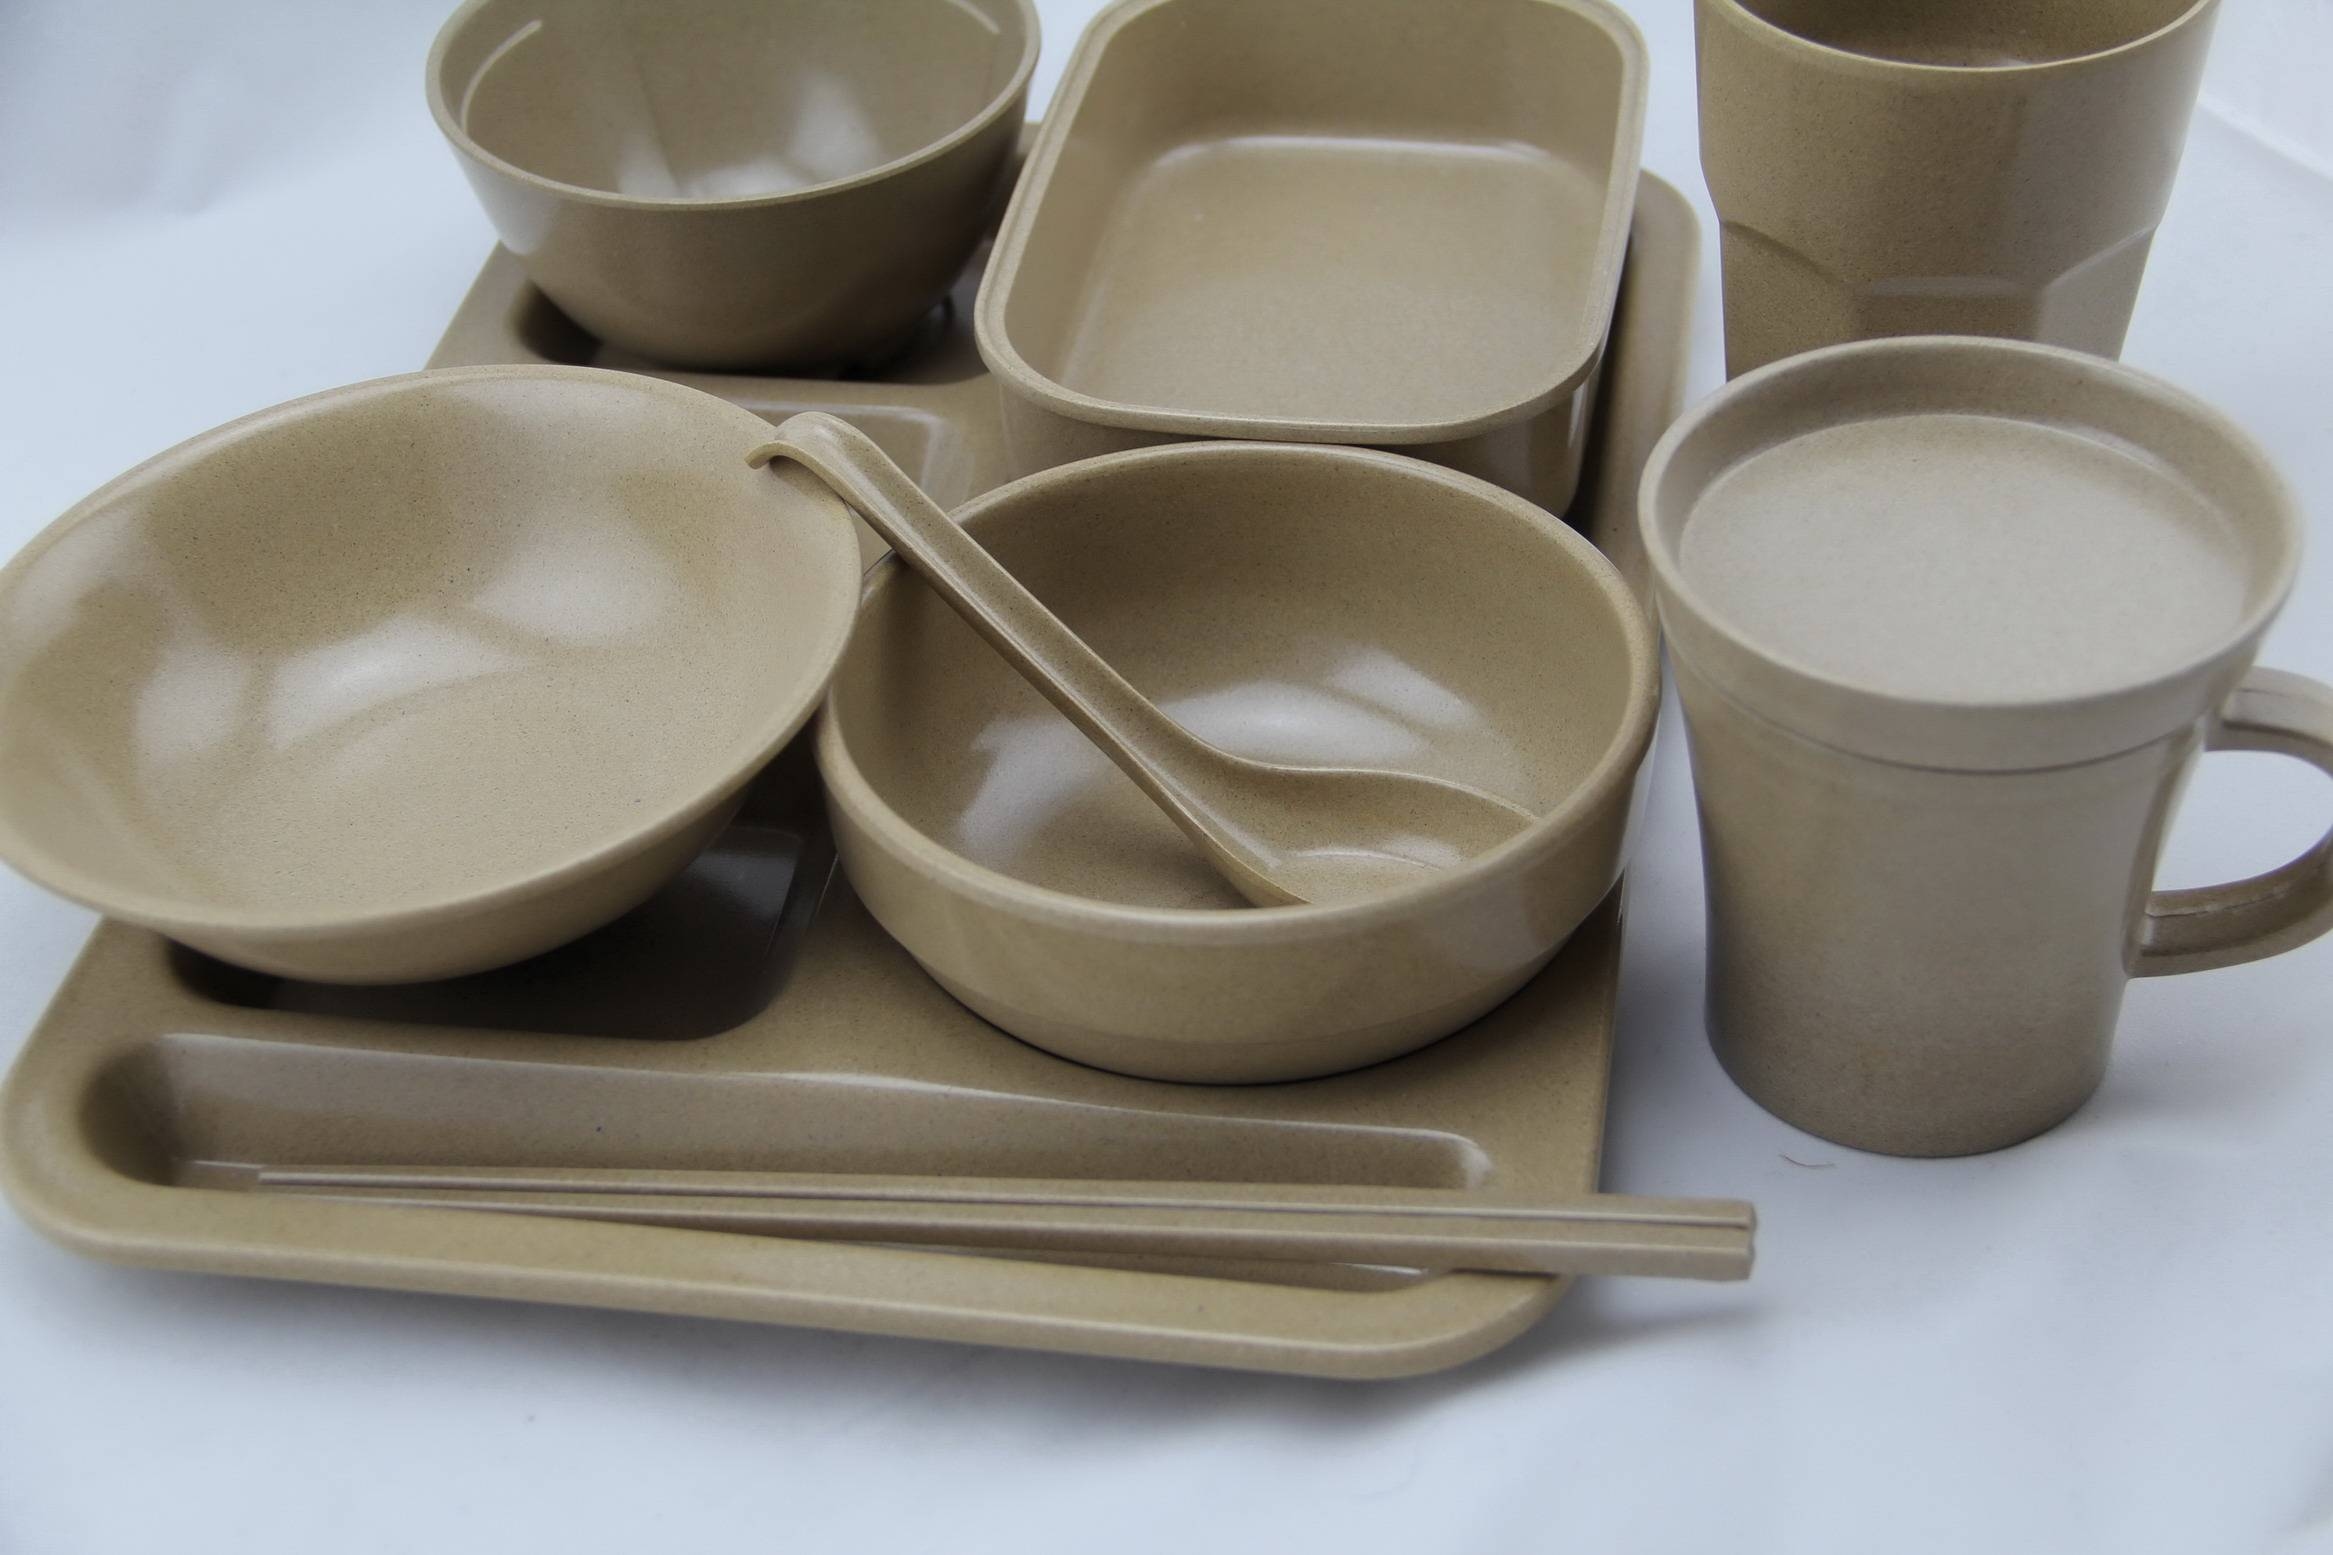 Eco friendly tableware from rice husk